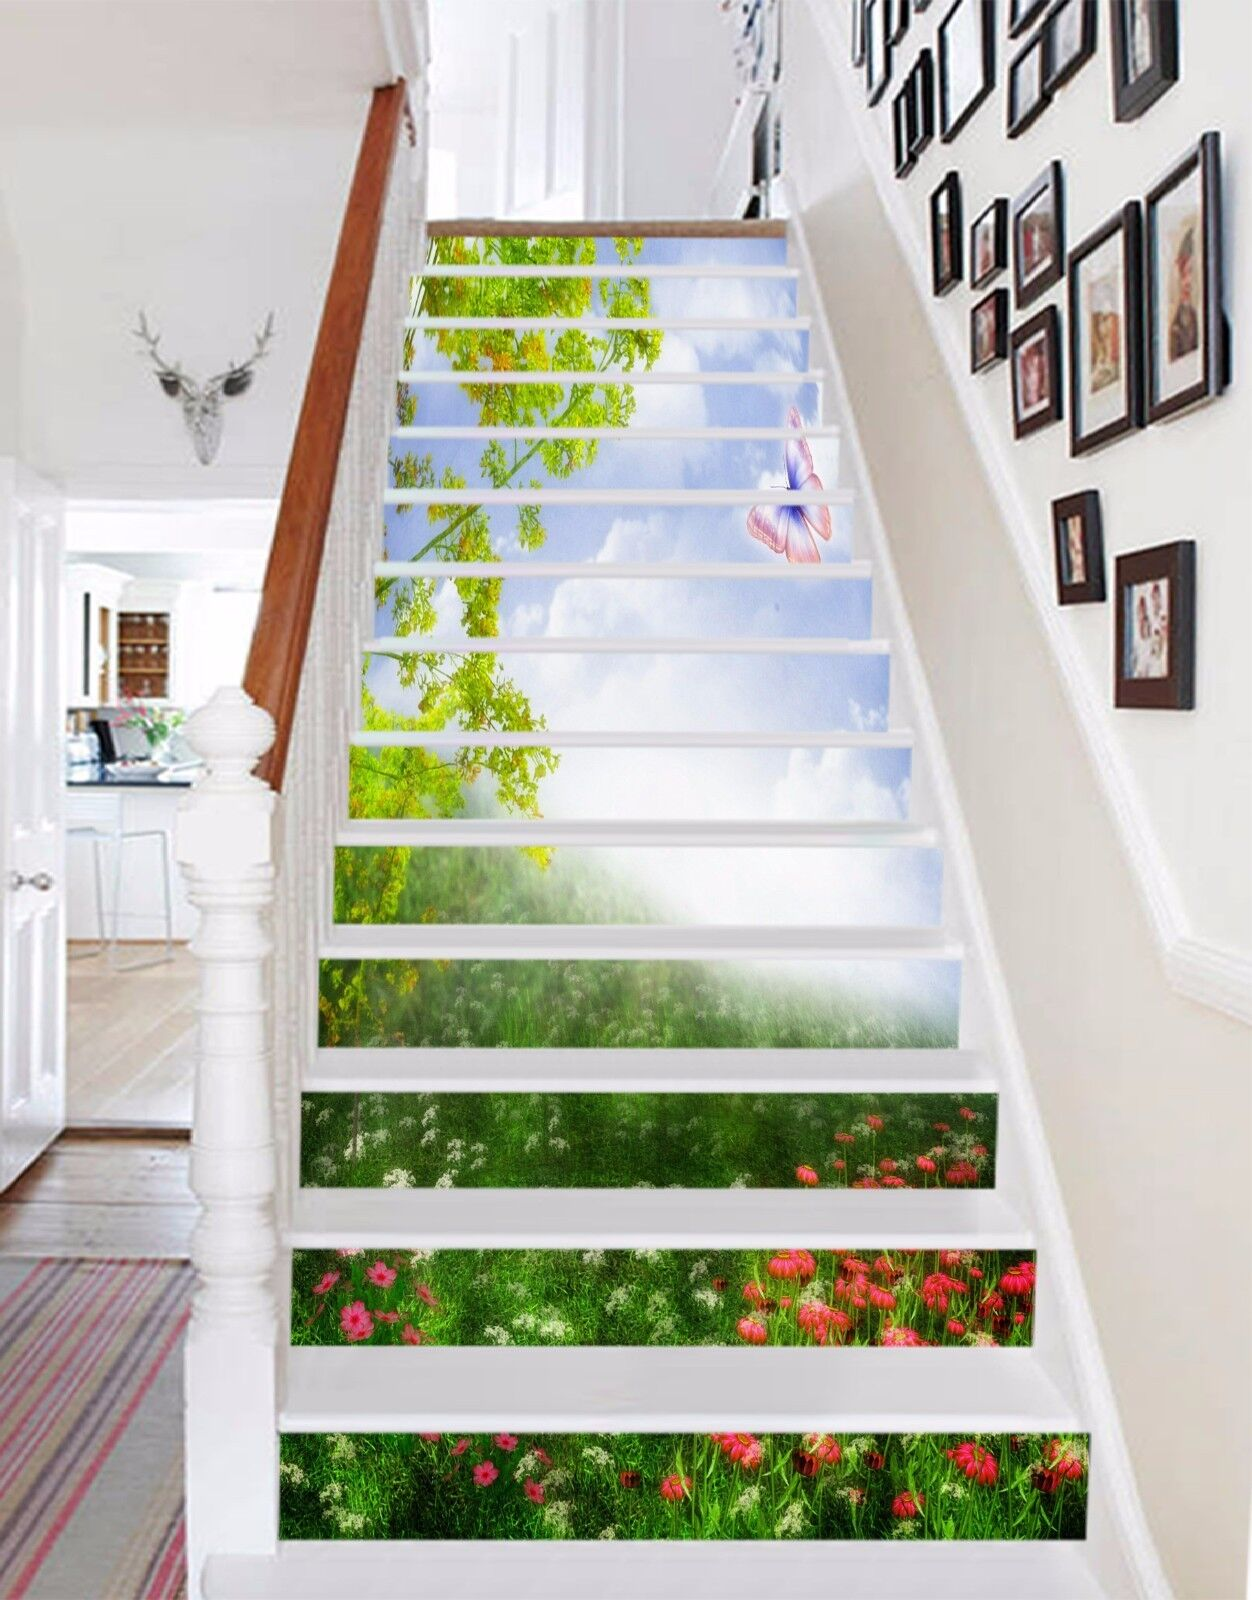 3D Sky leaf 357 Stair Risers Decoration Photo Mural Vinyl Decal Wallpaper UK